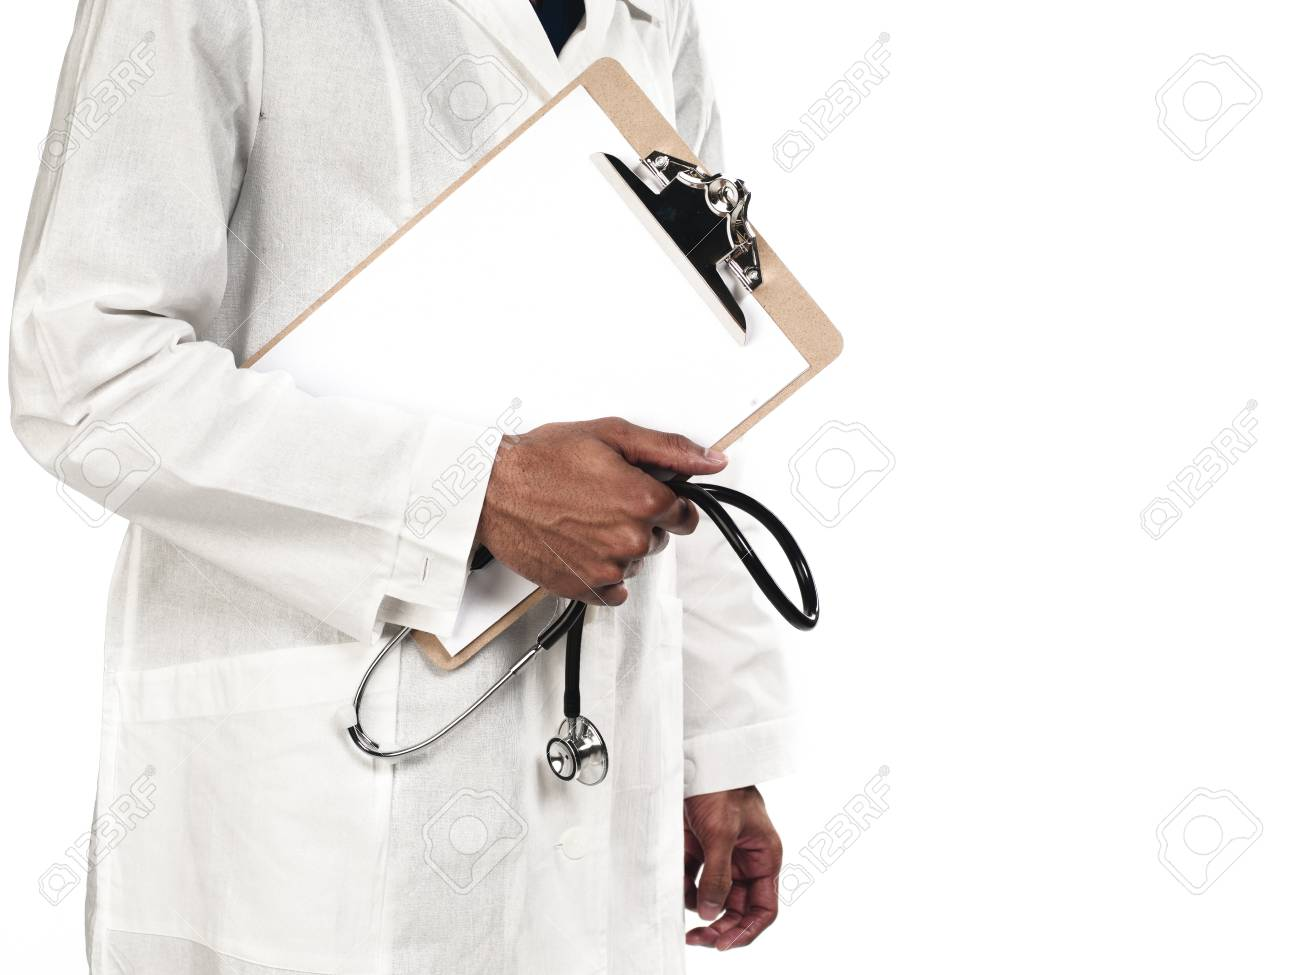 Midsection of a doctor holding stethoscope and clipboard against white background. Model: Kareem Duhaney Stock Photo - 17100978